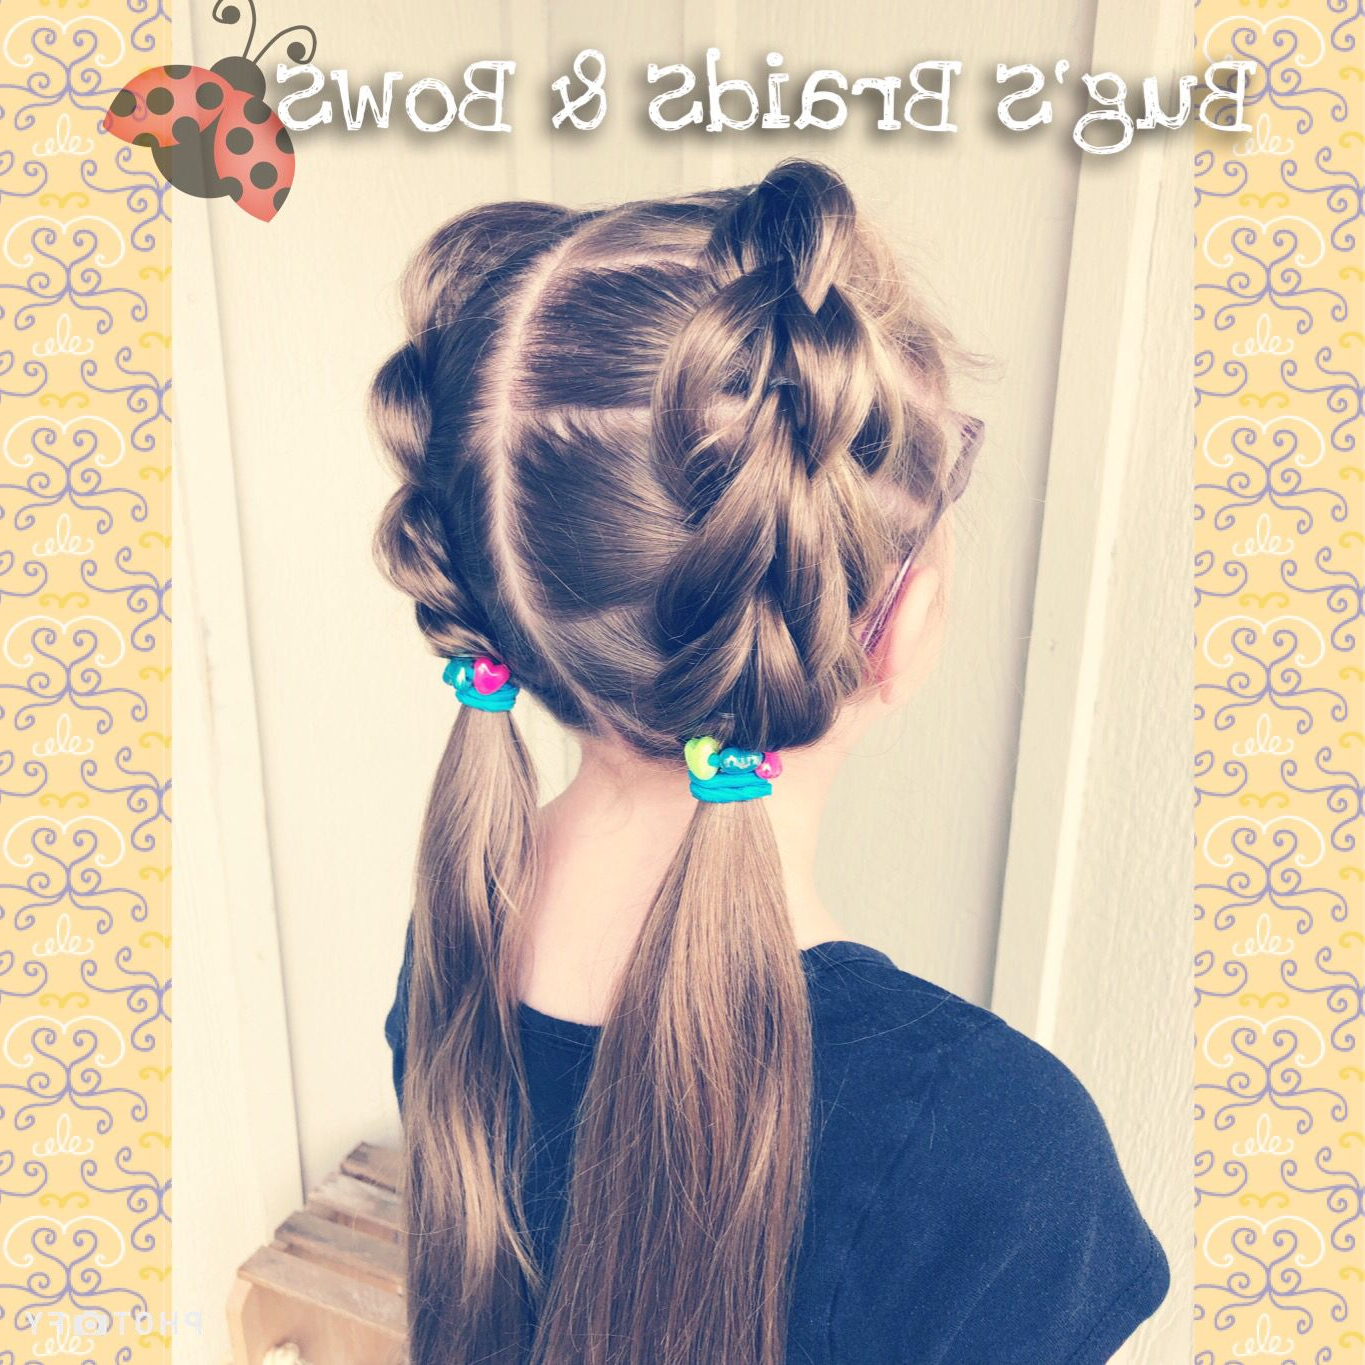 3 Strand Pull Through Braided Pigtails For Our First Day Regarding Famous Three Strand Pigtails Braided Hairstyles (View 15 of 20)